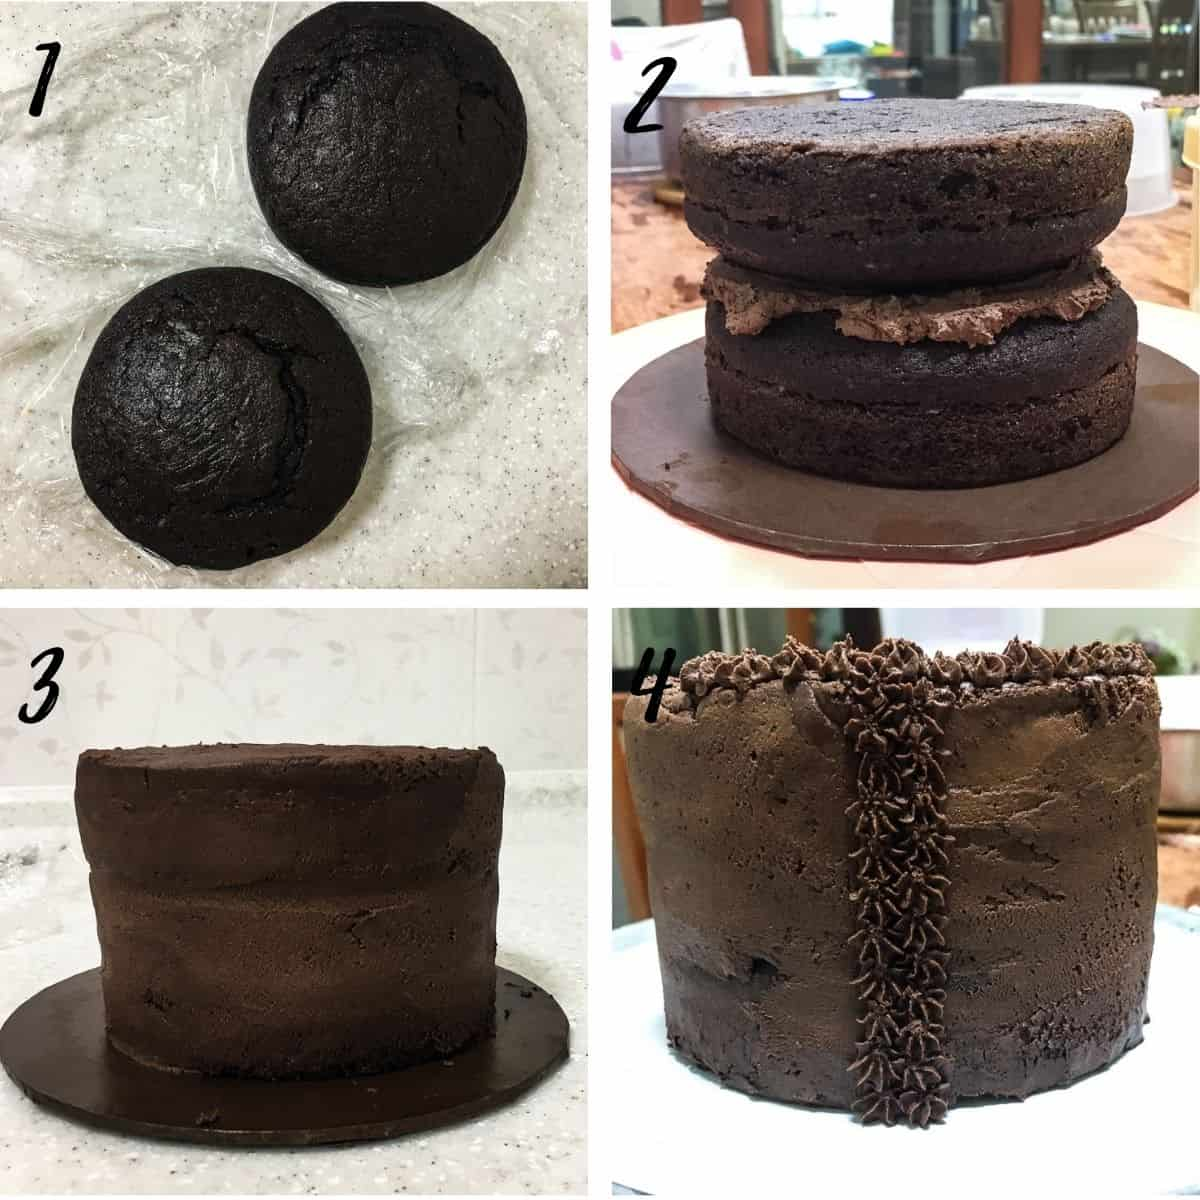 Poster with 4 images showing how to stack and cover a chocolate cake with chocolate icing in piped star design